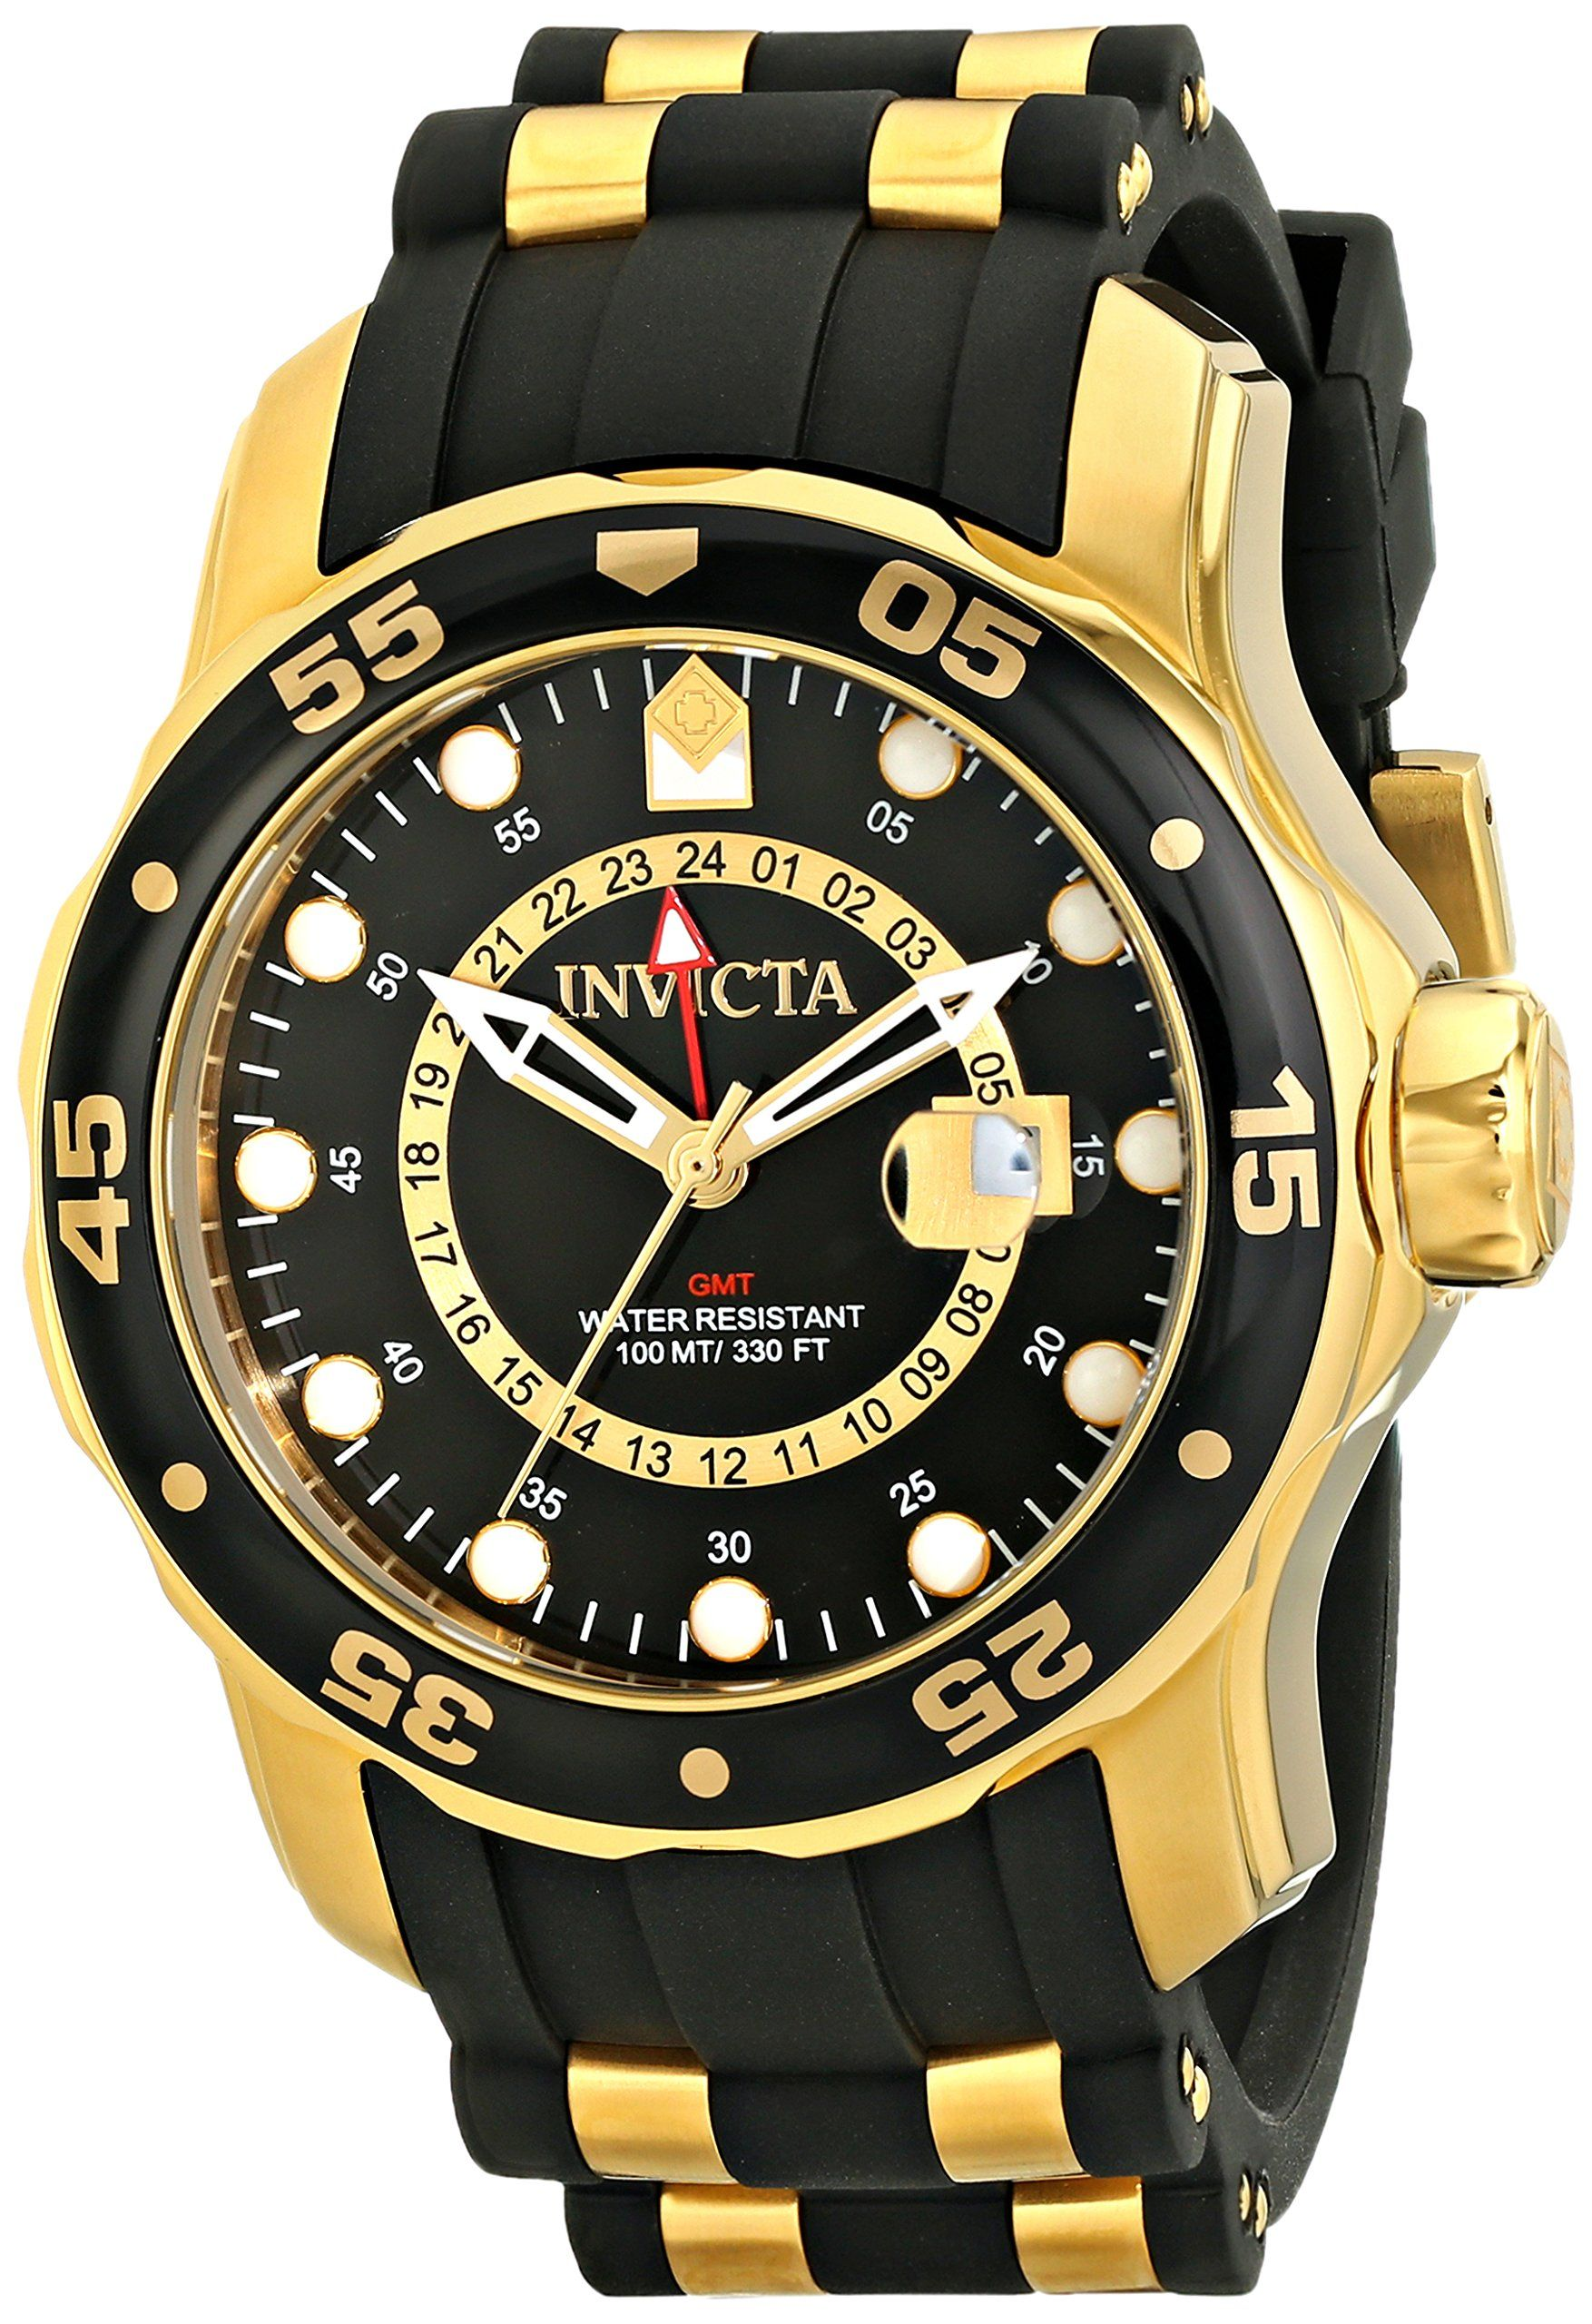 Invicta Men's 6991 Pro Diver Collection GMT 18k Gold-Plated Stainless Steel Watch with Black Band. Rugged watch featuring multifunction dial with magnified date window, GMT time, and luminosity. 48 mm stainless steel case with mineral dial window. Swiss quartz movement with analog display. Polyurethane band with buckle closure. Water resistant to 100 m (330 ft).